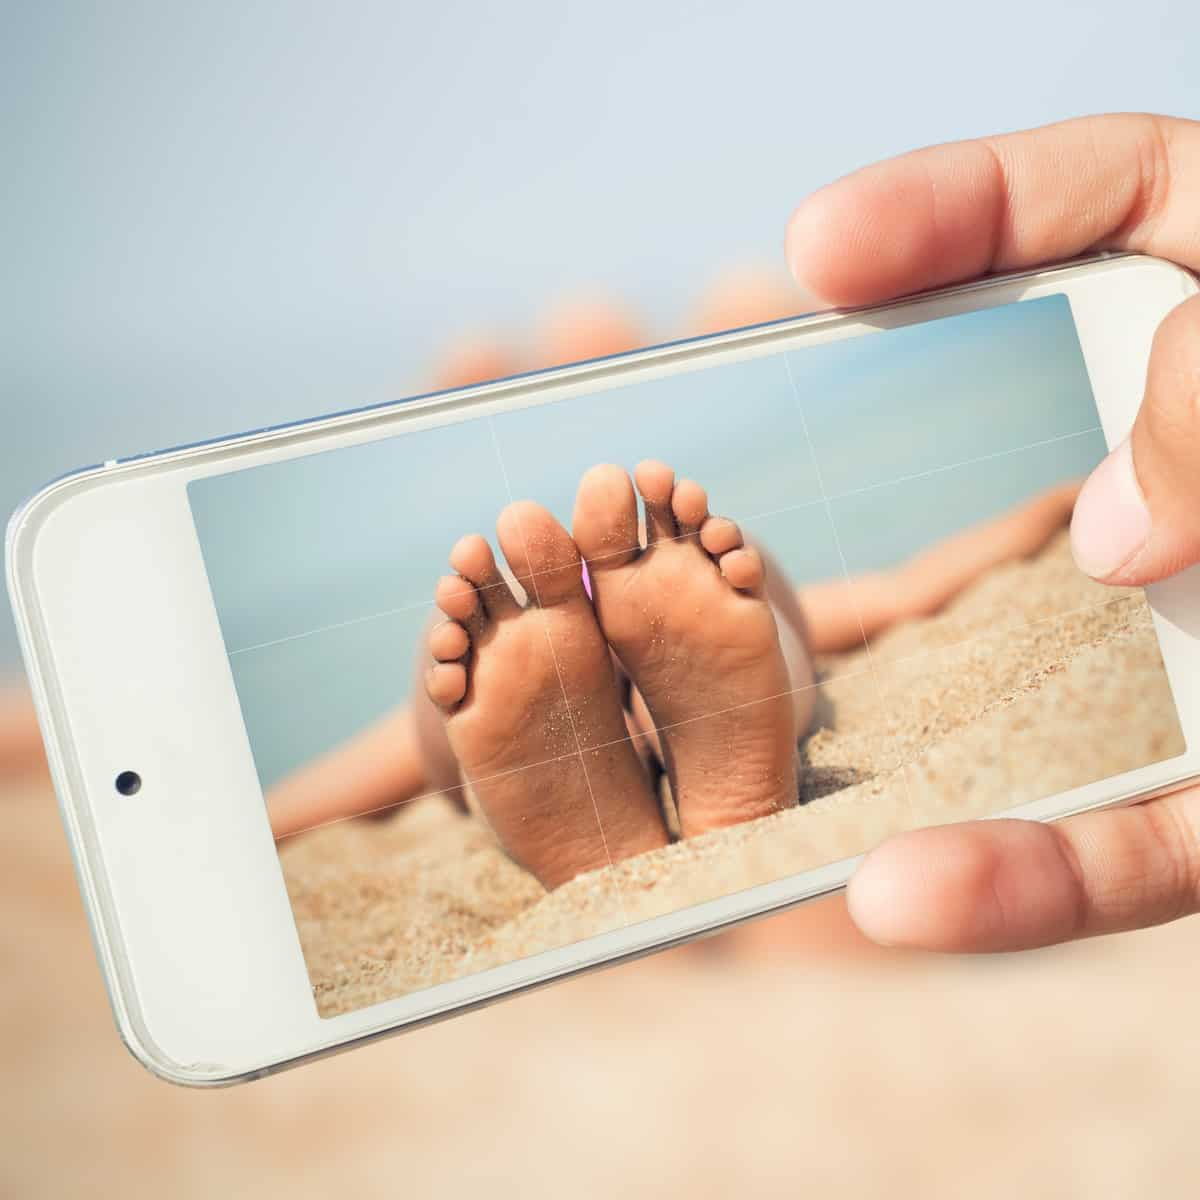 Instantfeet review : can you really make money selling foot pictures?